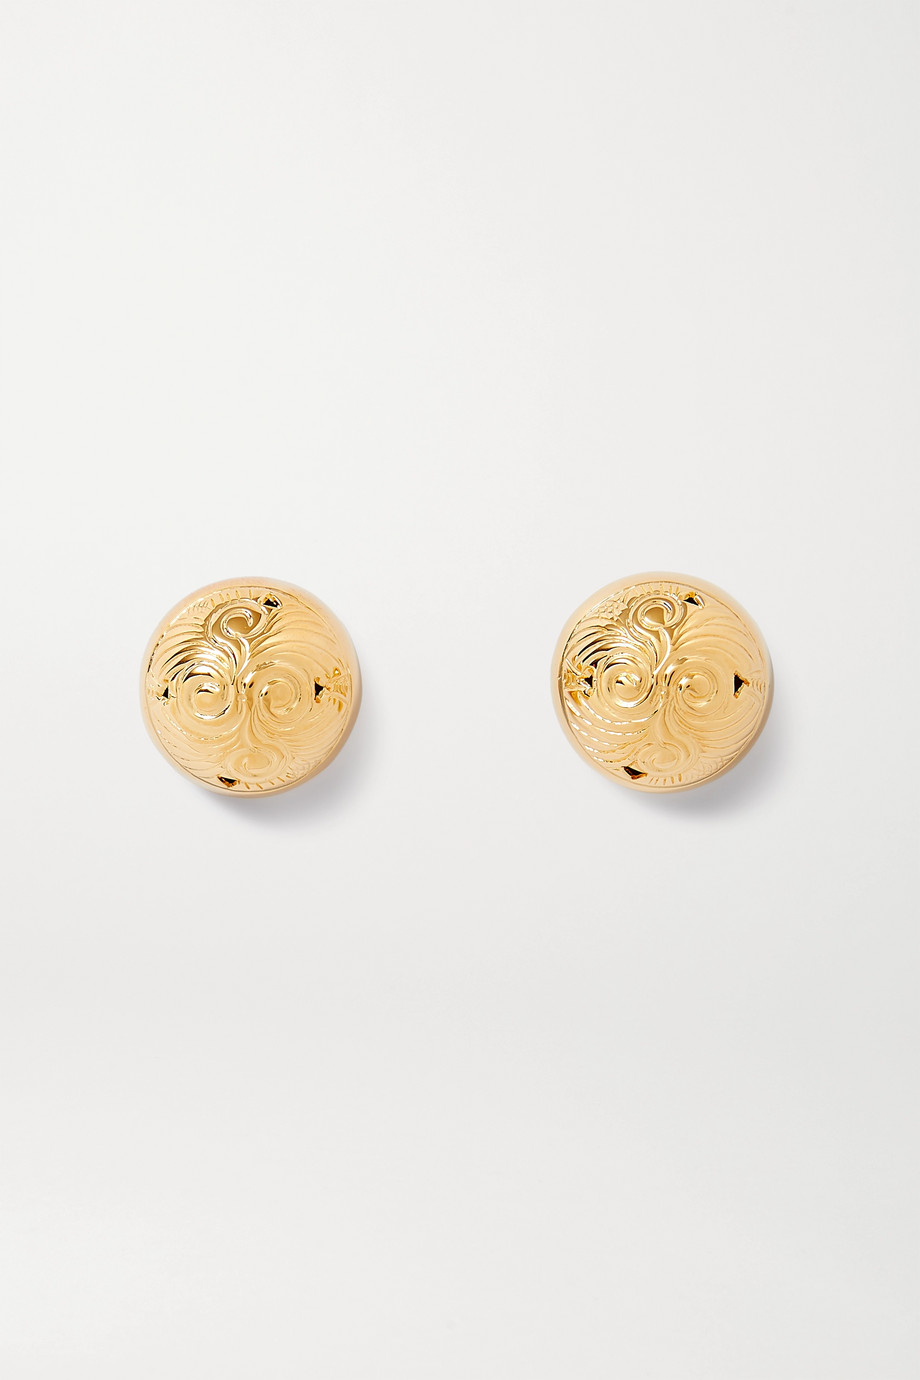 Soft Mountains Hourglass gold vermeil earrings